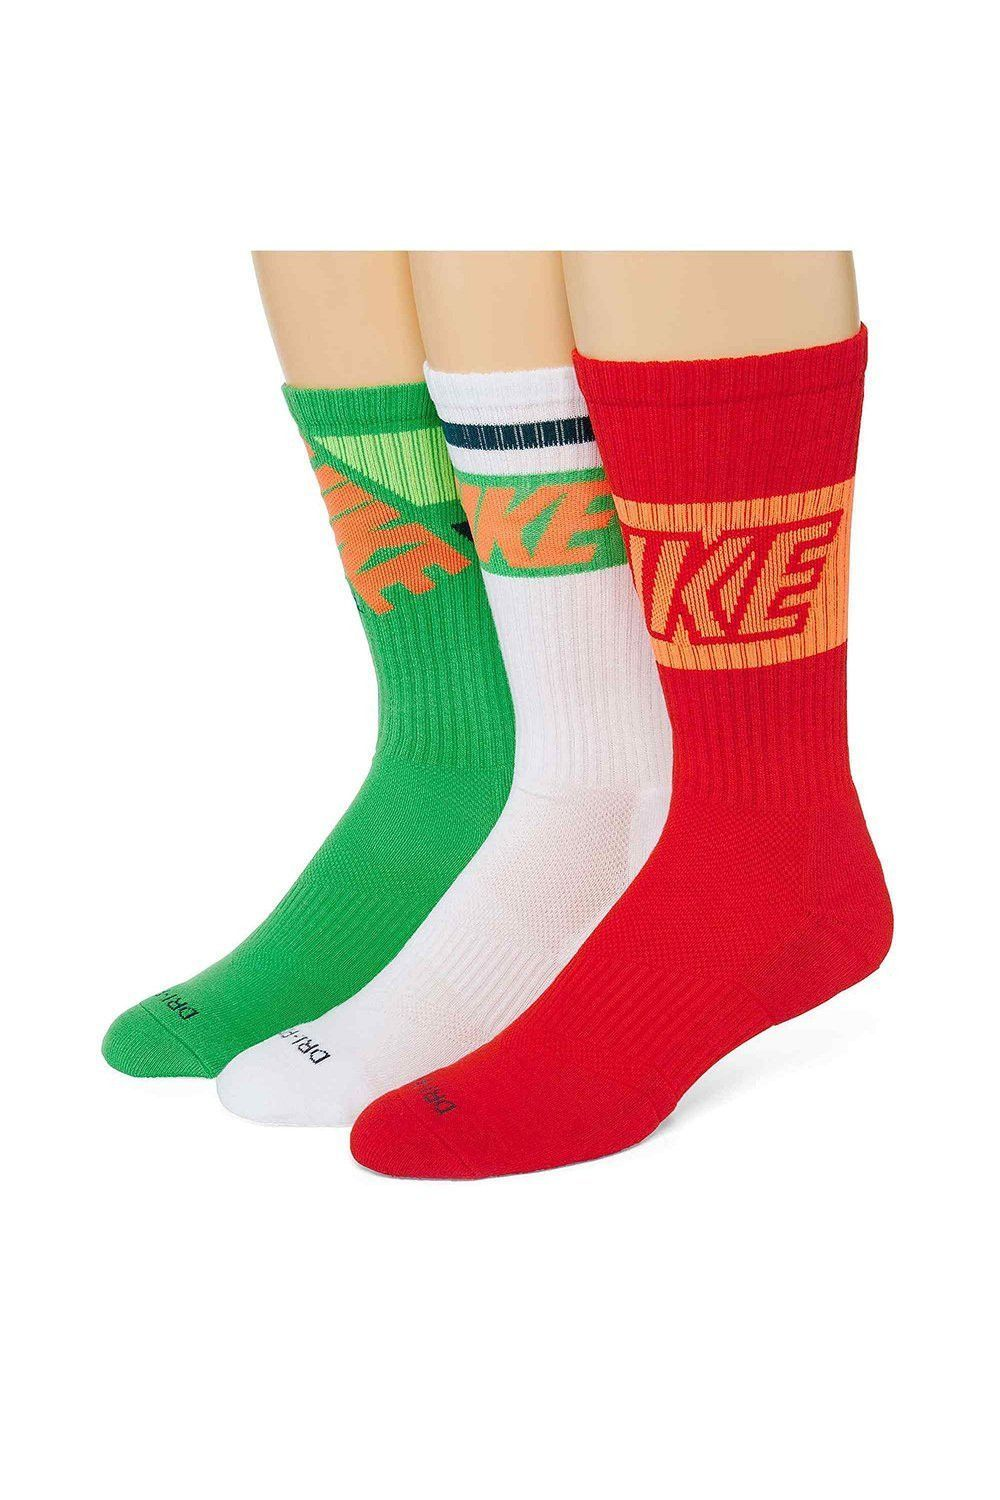 Nike Mens Dri-fit Fly Rise Crew Socks (3 Pack) Large 8-12 | Products ...